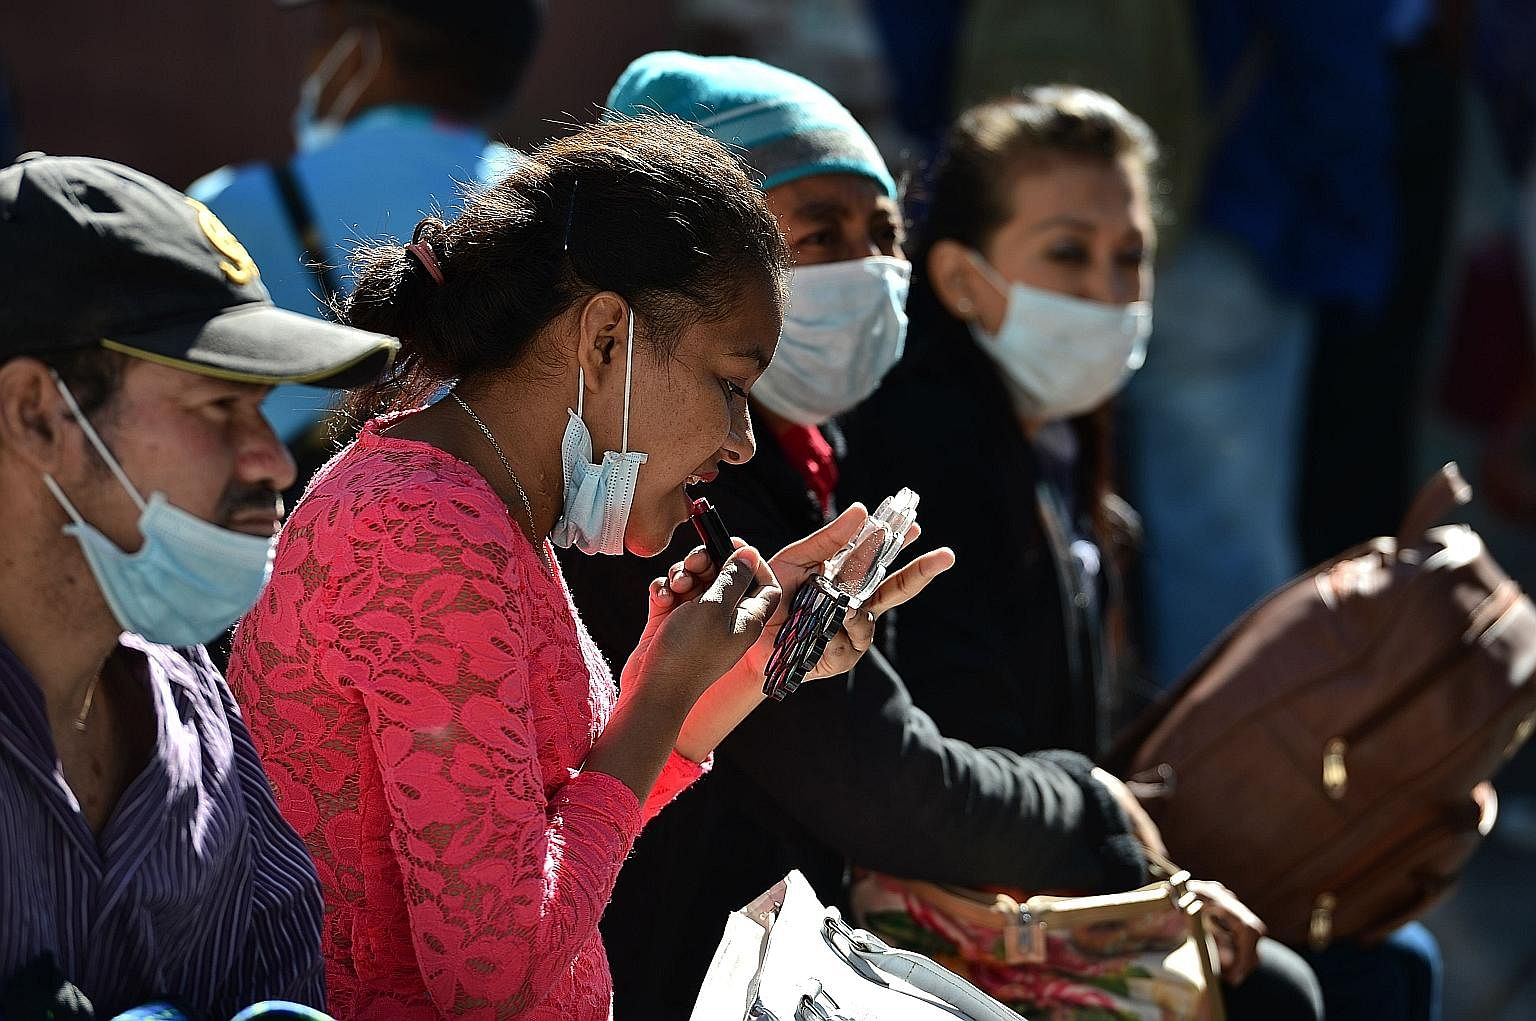 A woman applying lipstick next to people wearing face masks amid the coronavirus outbreak, in Tegucigalpa, Honduras, in March. With face coverings an inevitable part of our essential attire for some time to come at least, some are wondering about the